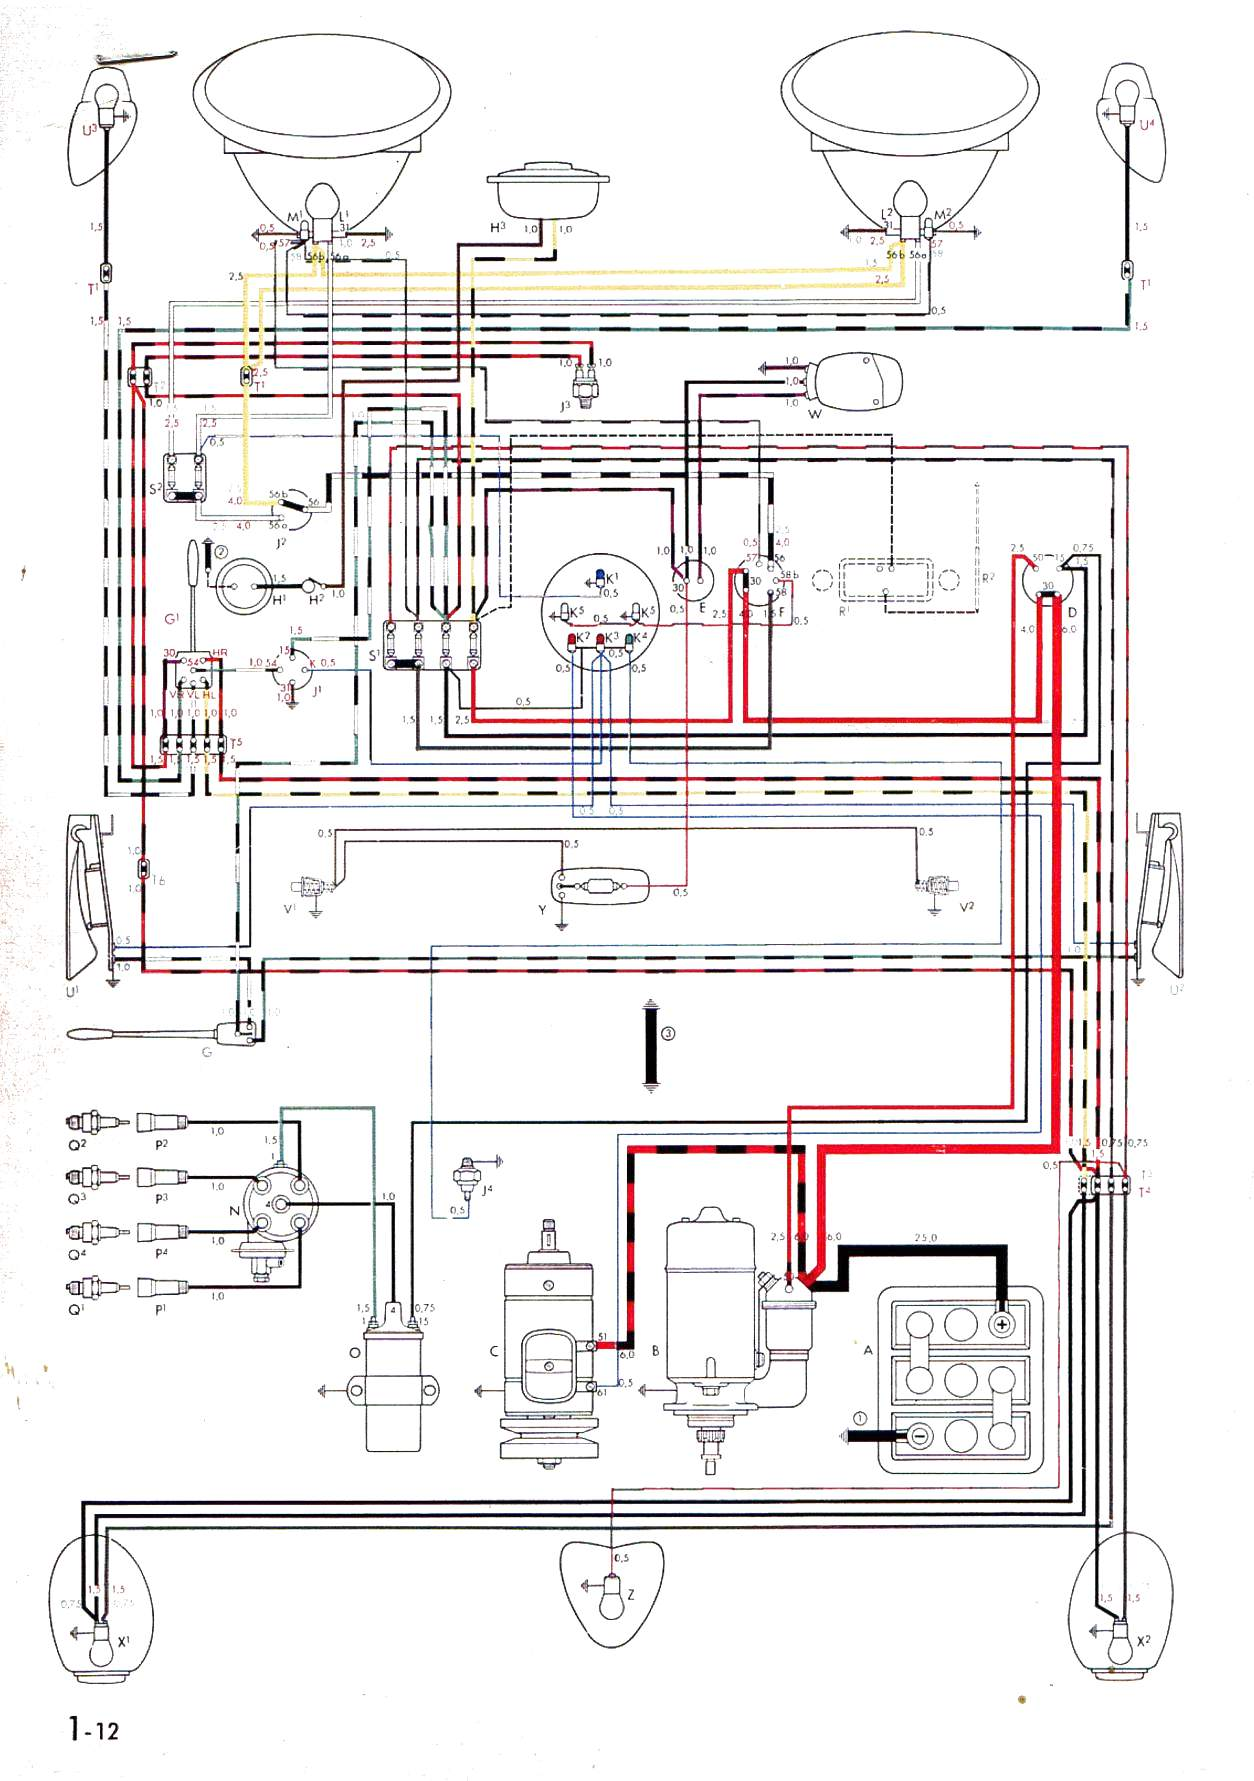 bug 55 57 vw wiring diagrams 1972 beetle wiring diagram at bayanpartner.co